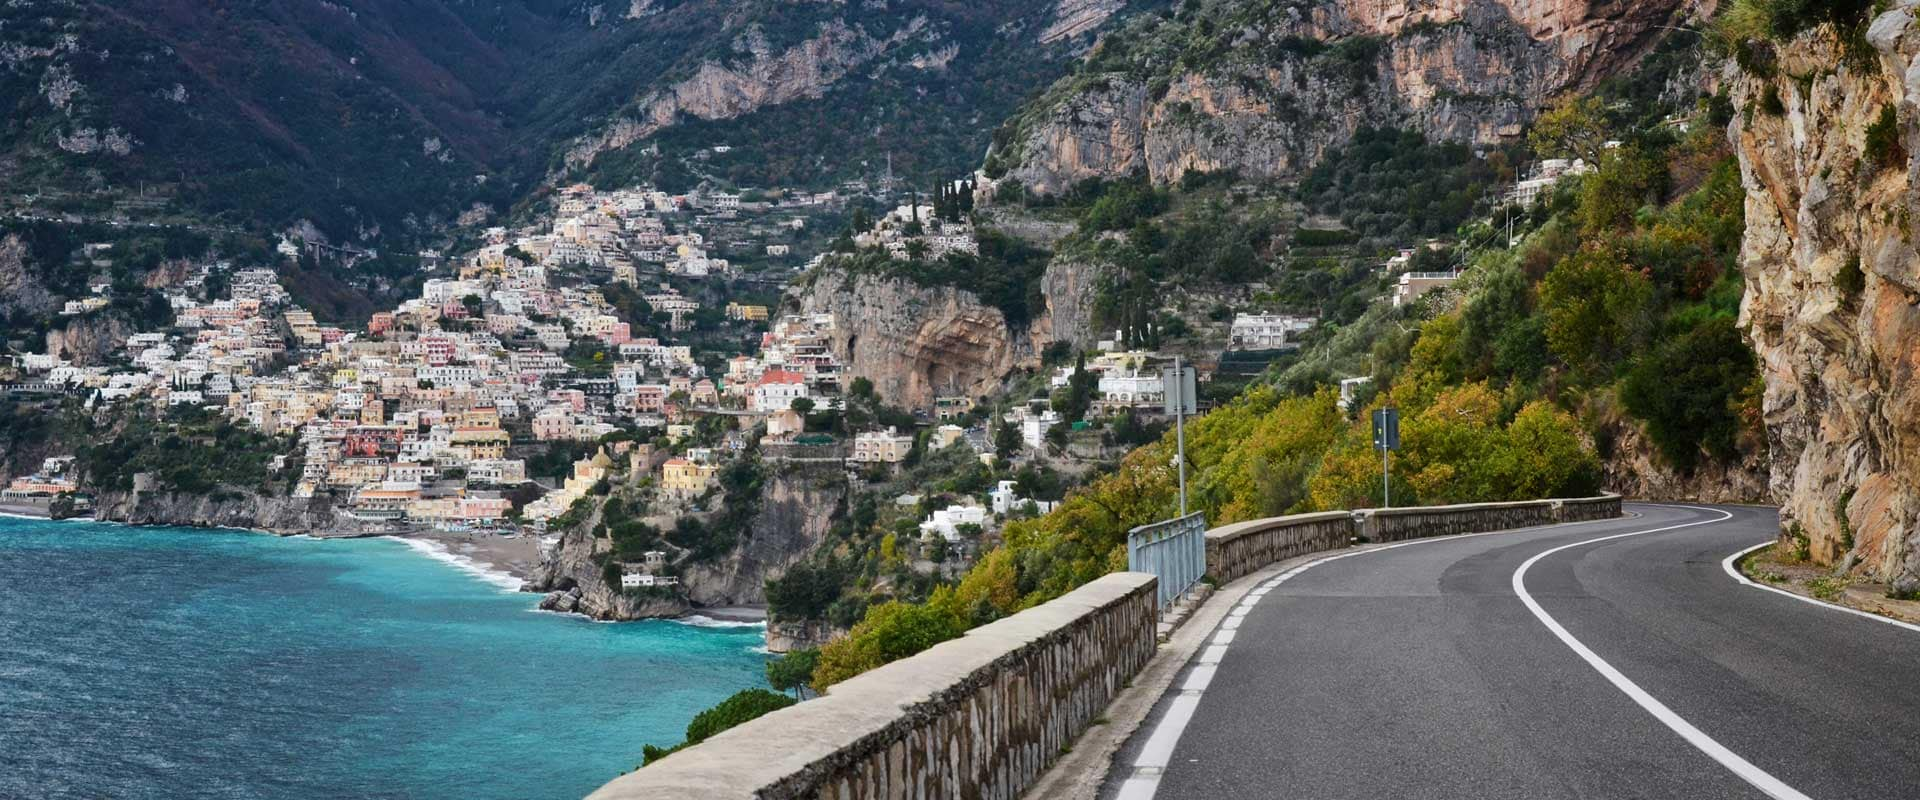 Amalfi, Italy coastal road